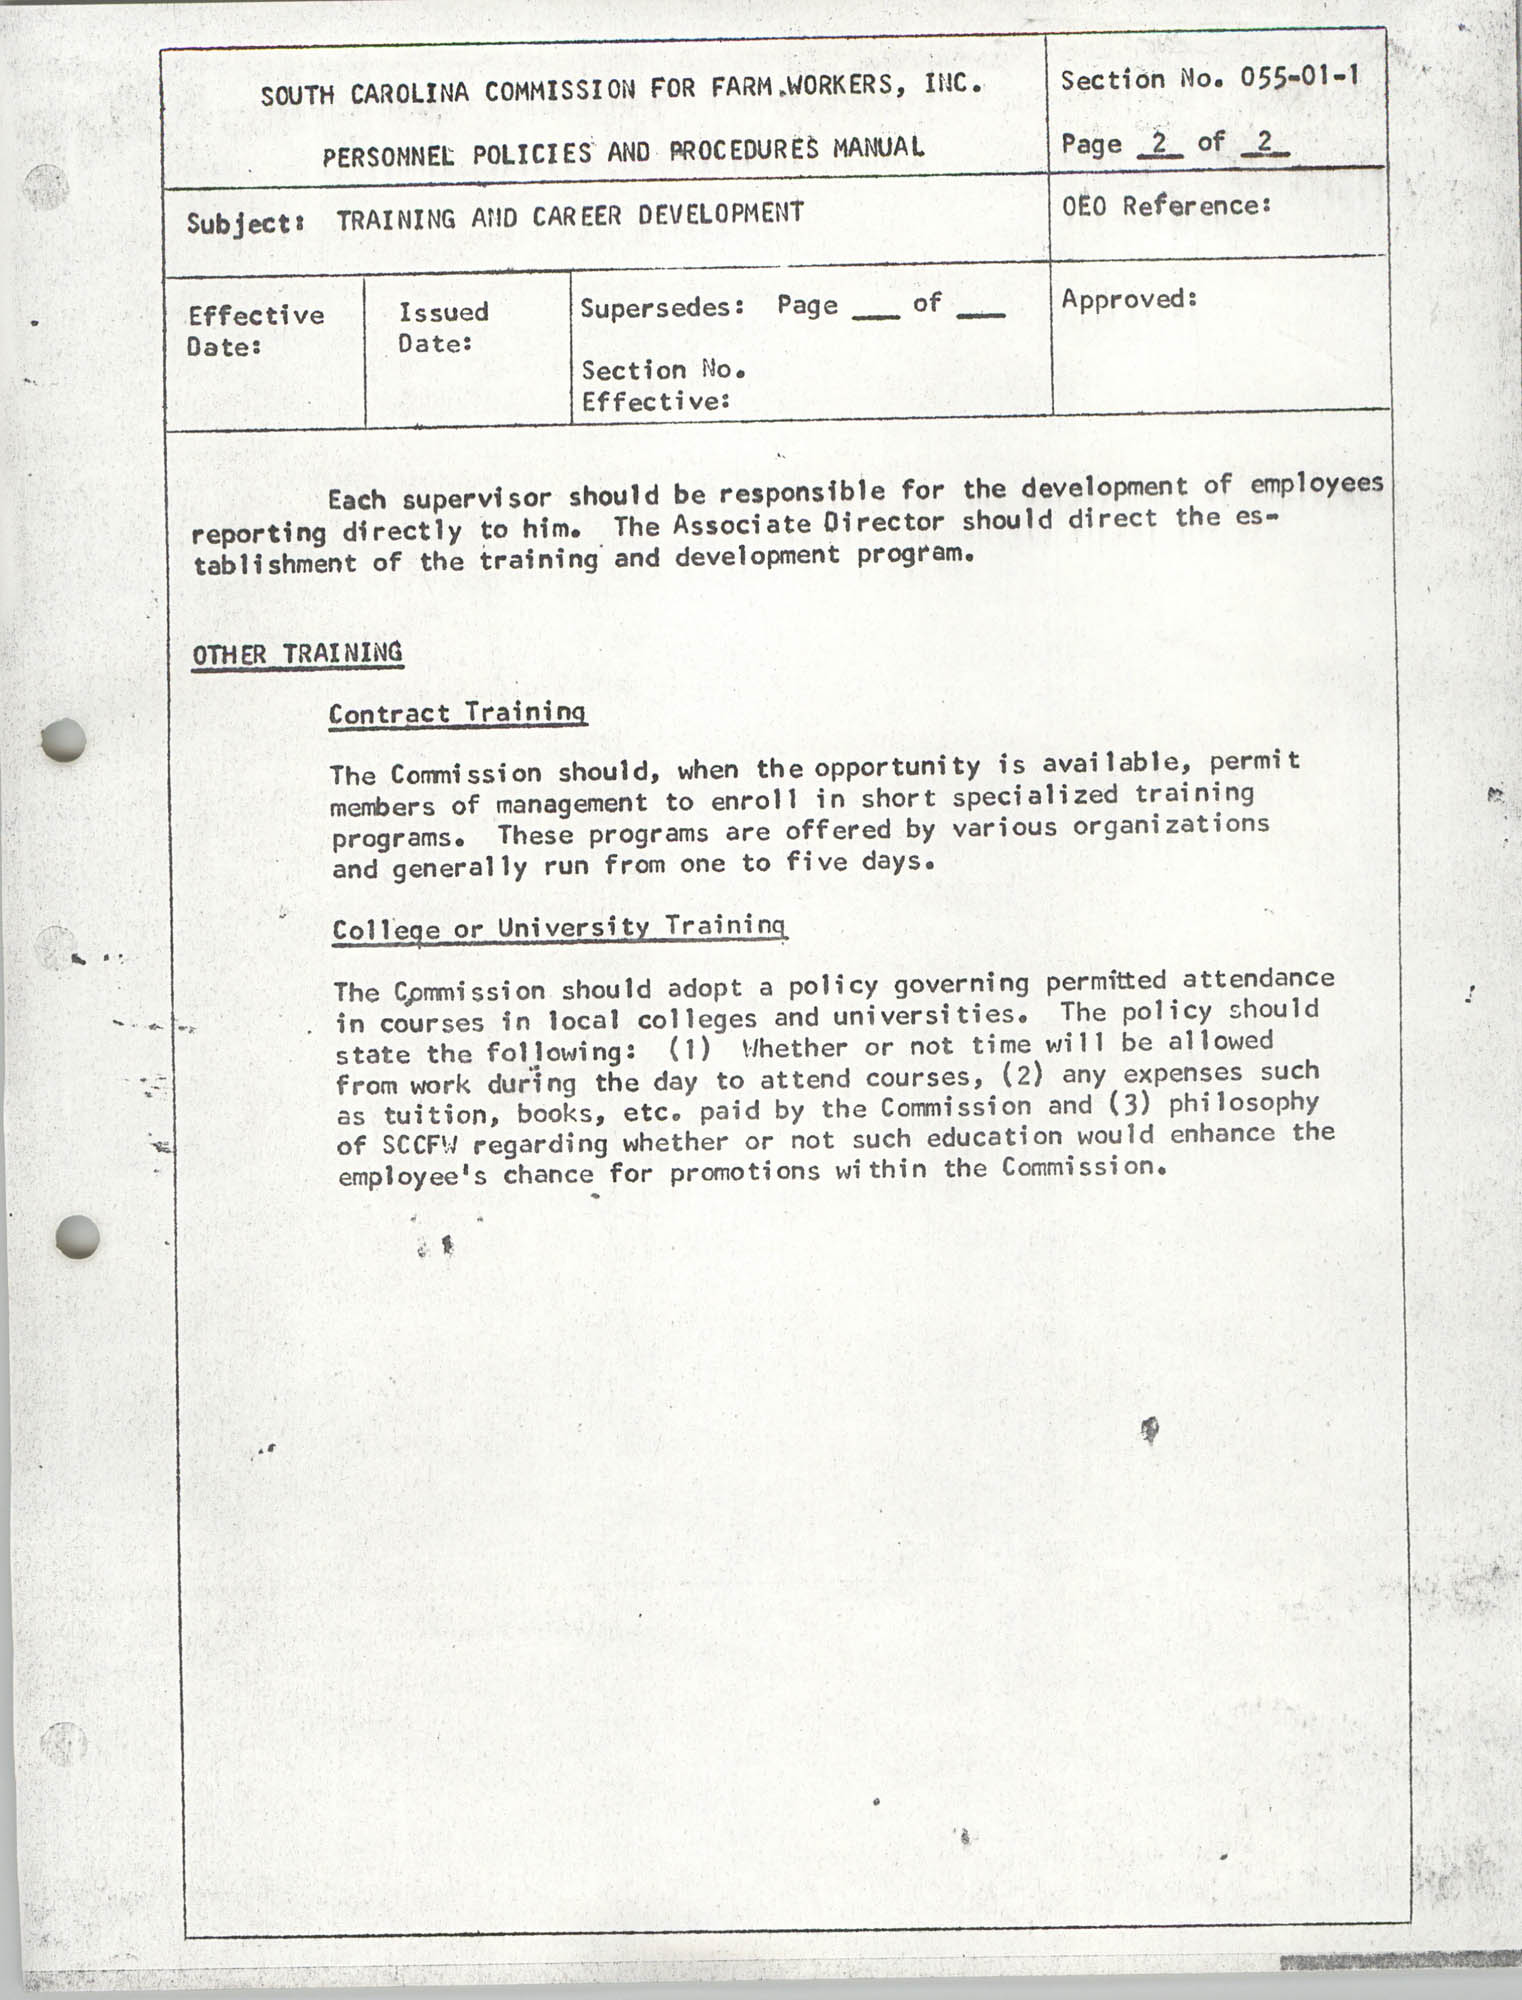 Personnel Policies and Procedures Manual, Section No. 060-01-1, Page 1